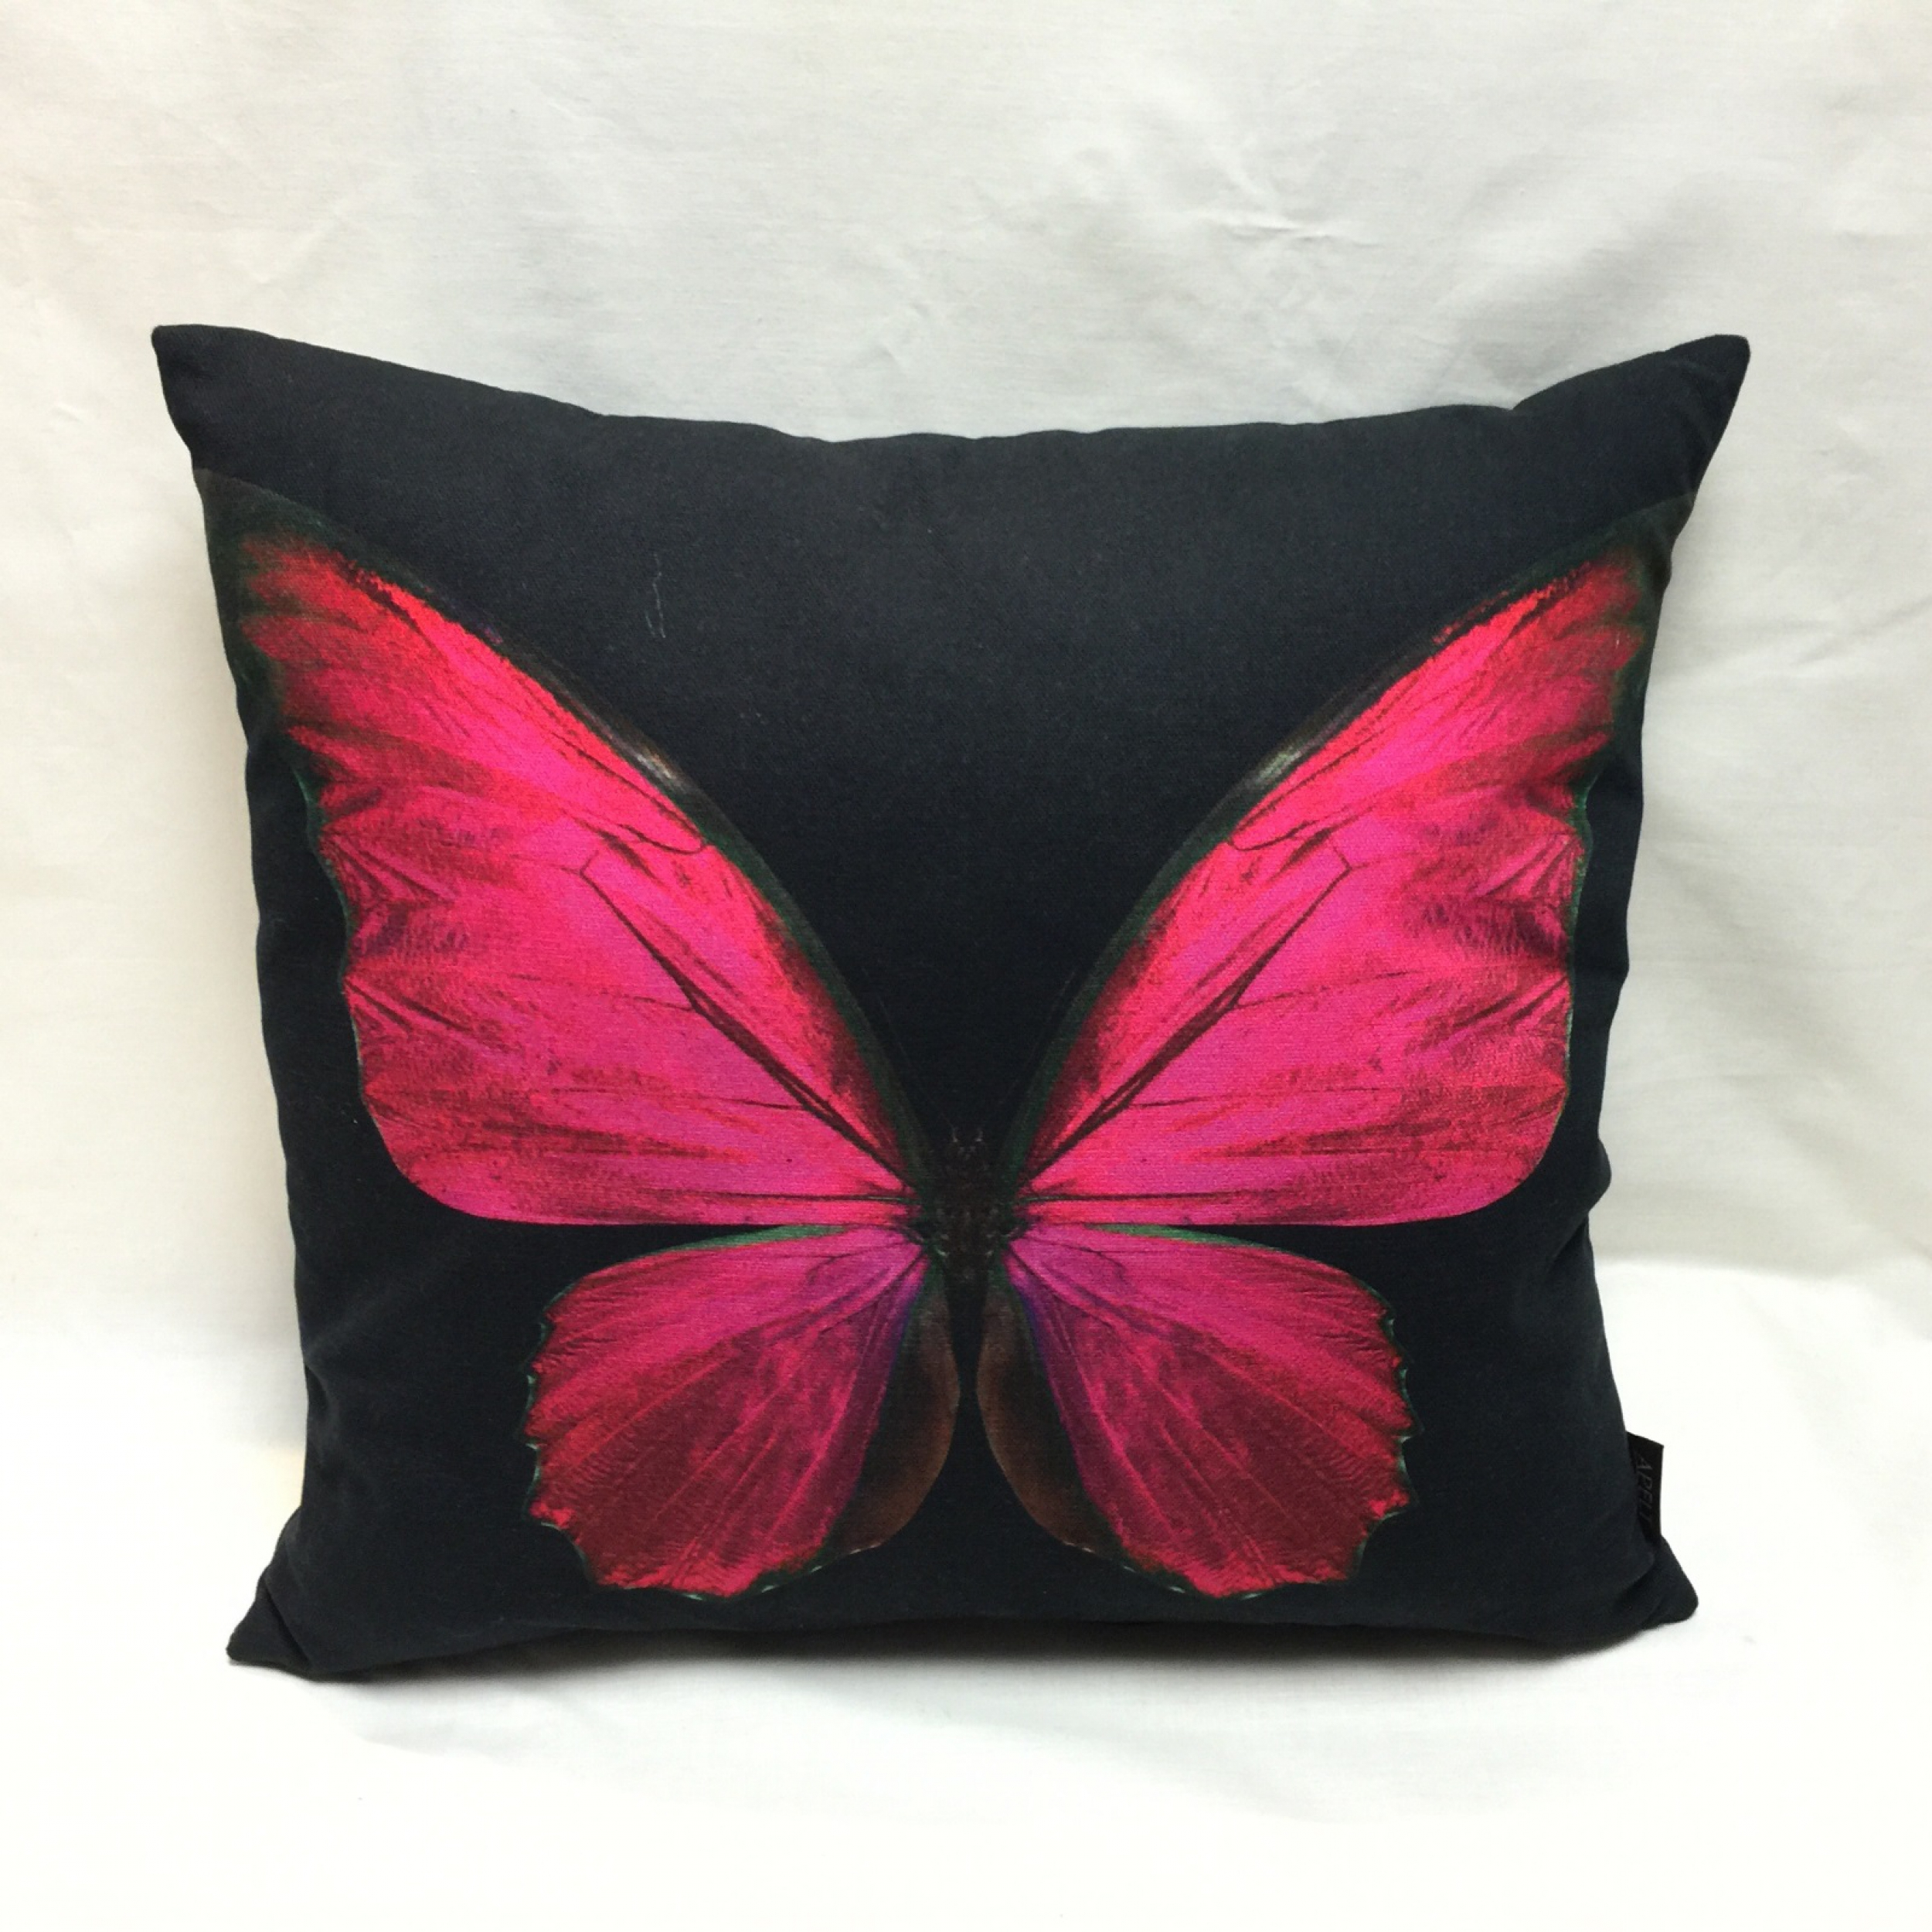 coussin papillon fushia d houssable 45 x 45 cm l 39 atelier de la toile. Black Bedroom Furniture Sets. Home Design Ideas